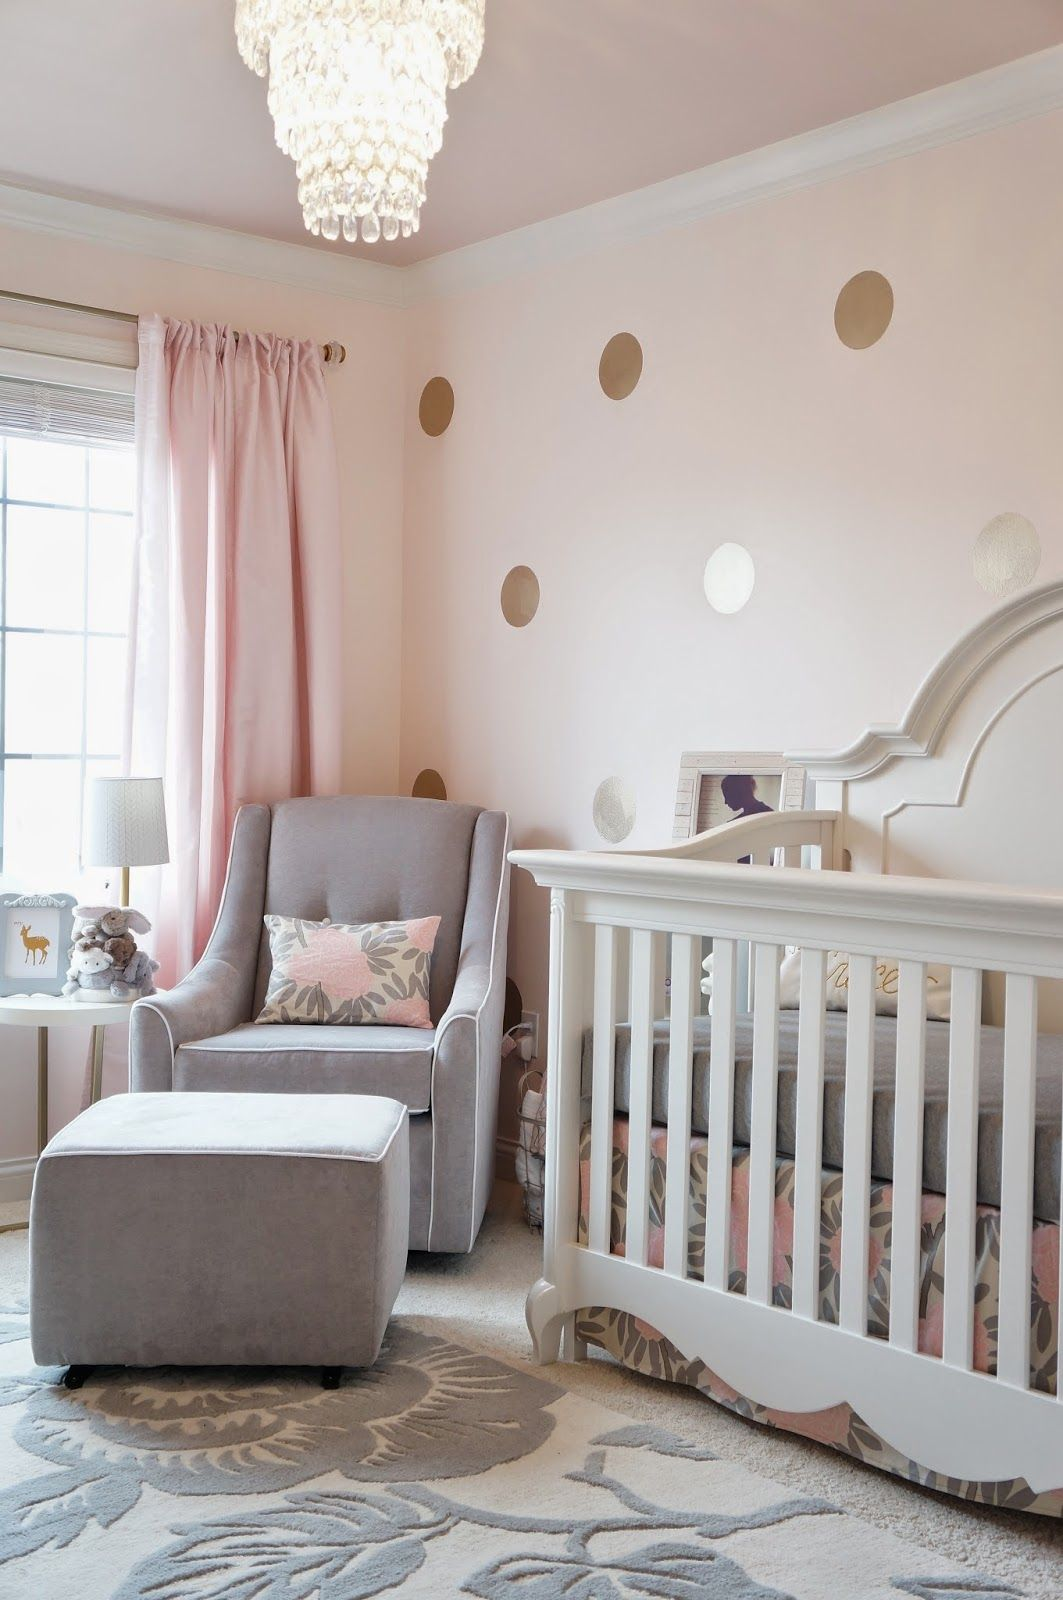 39 id es inspirations pour la d coration de la chambre b b photos pink grey house for Deco petite chambre simple